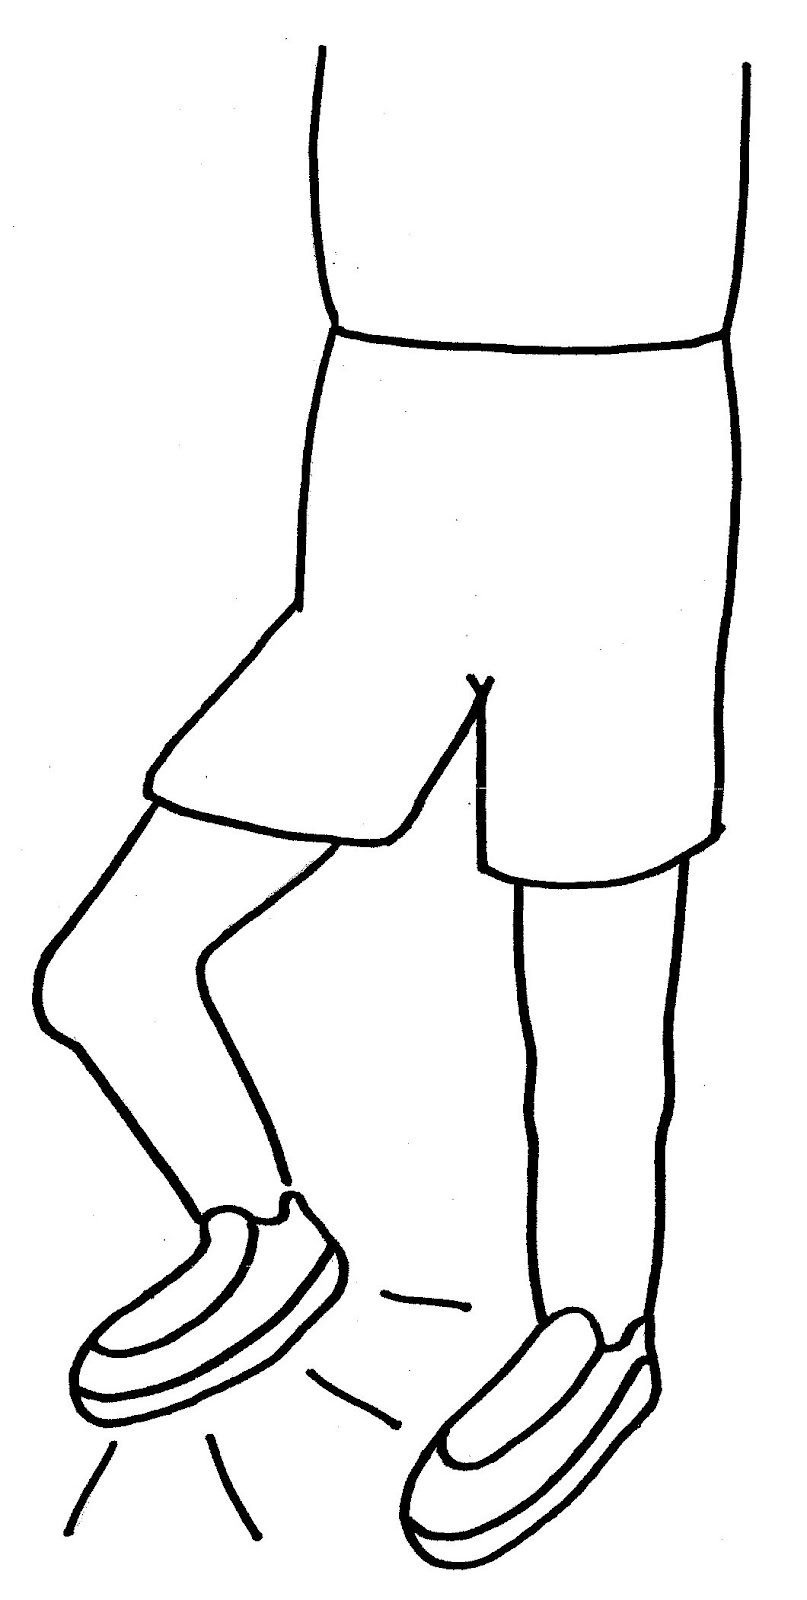 Stomping Feet Clipart.